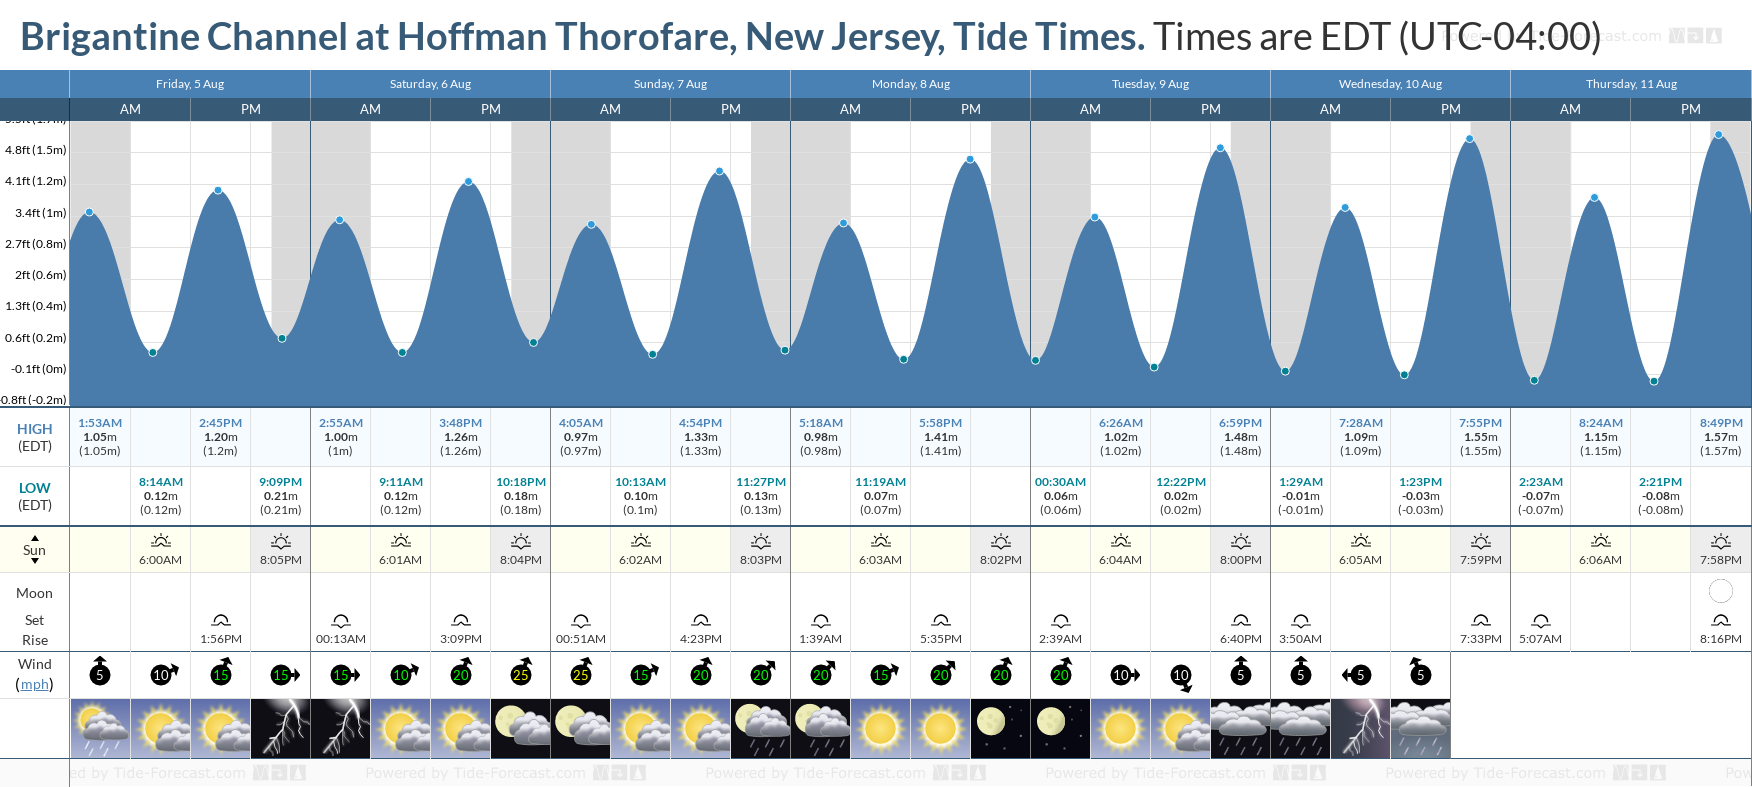 Brigantine Channel at Hoffman Thorofare, New Jersey Tide Chart including high and low tide tide times for the next 7 days